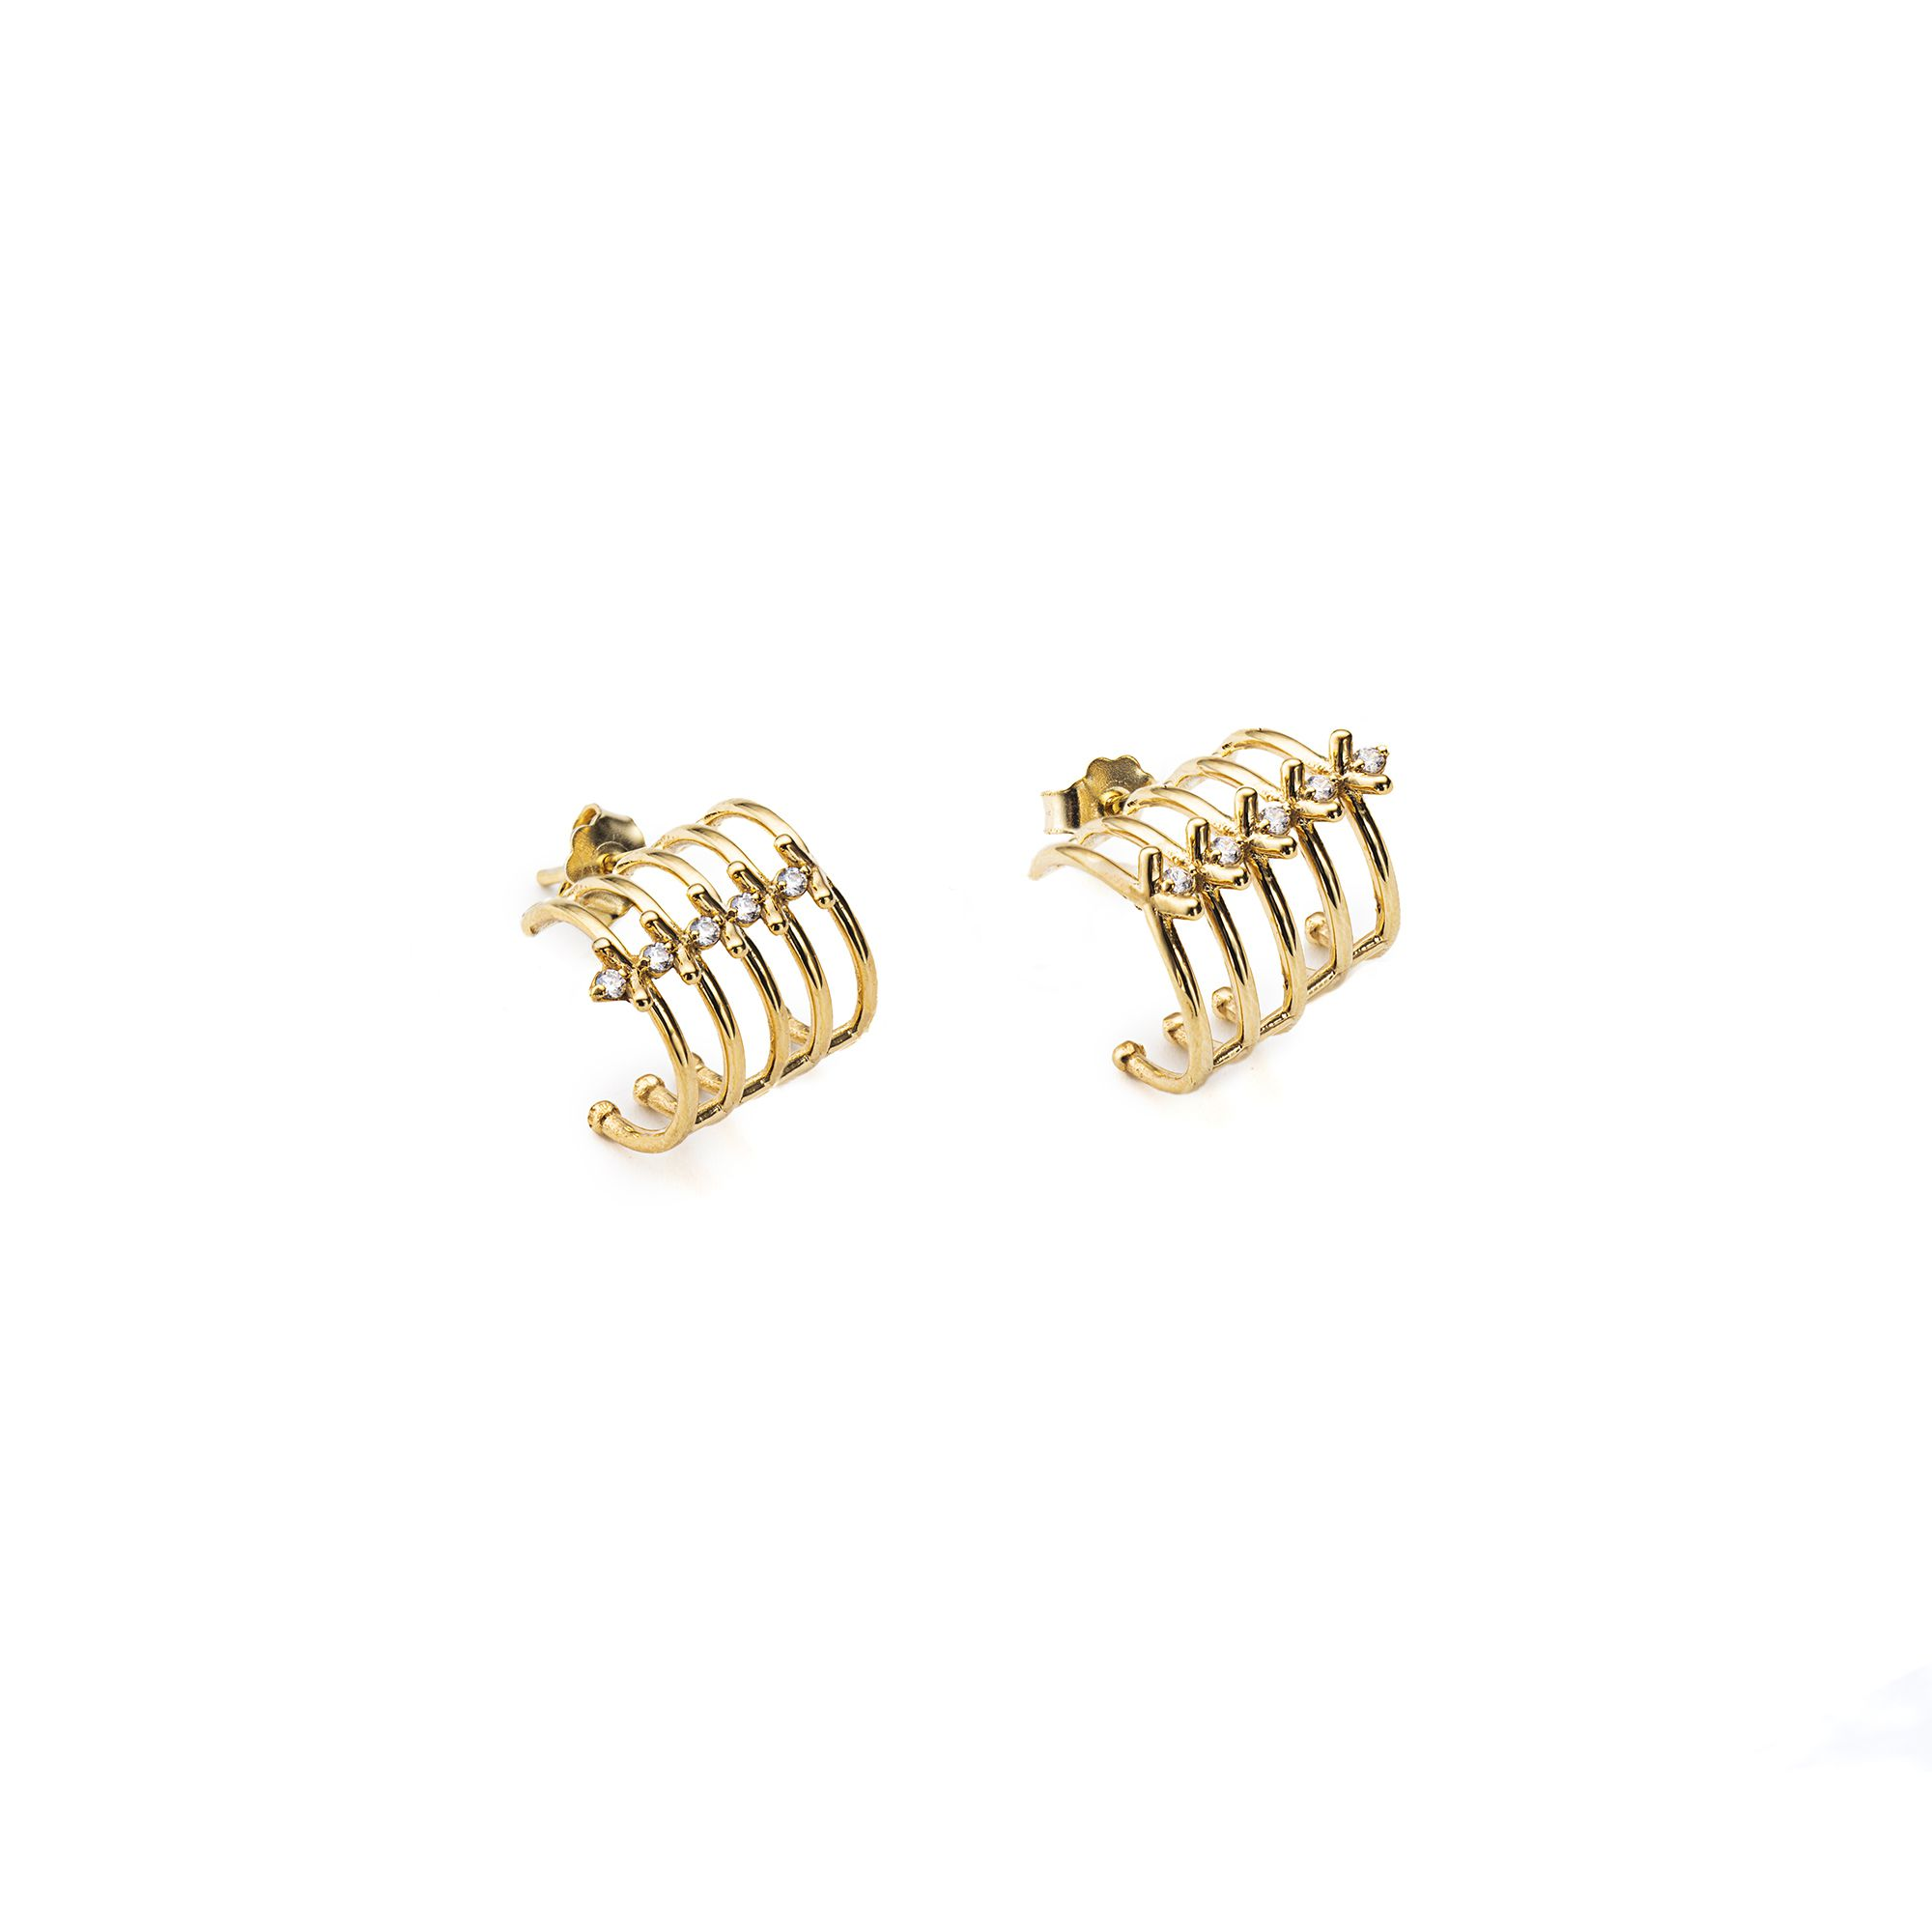 5 element 'Spinae' earrings 24 kt gold plated bronze earrings